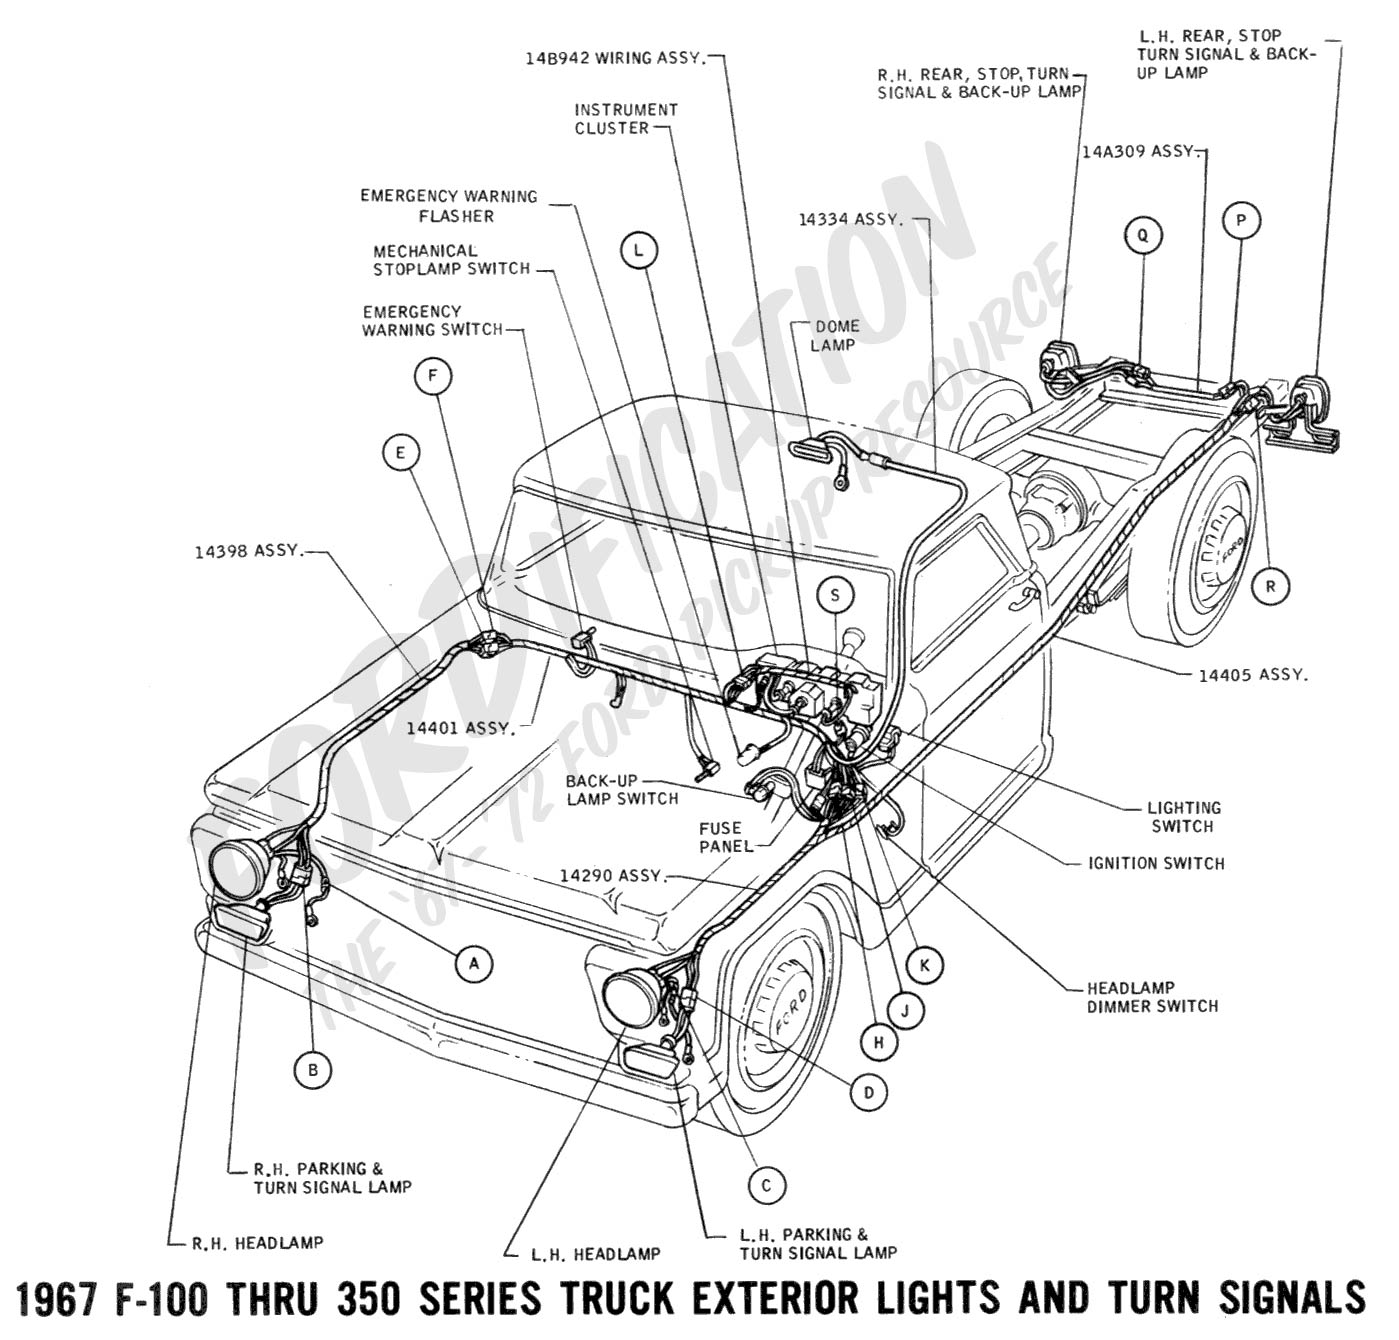 1993 Ford F250 Rear Gas Tank Wiring Diagram 43 F 250 Fuse Box 1967extlights01 Truck Technical Drawings And Schematics Section H